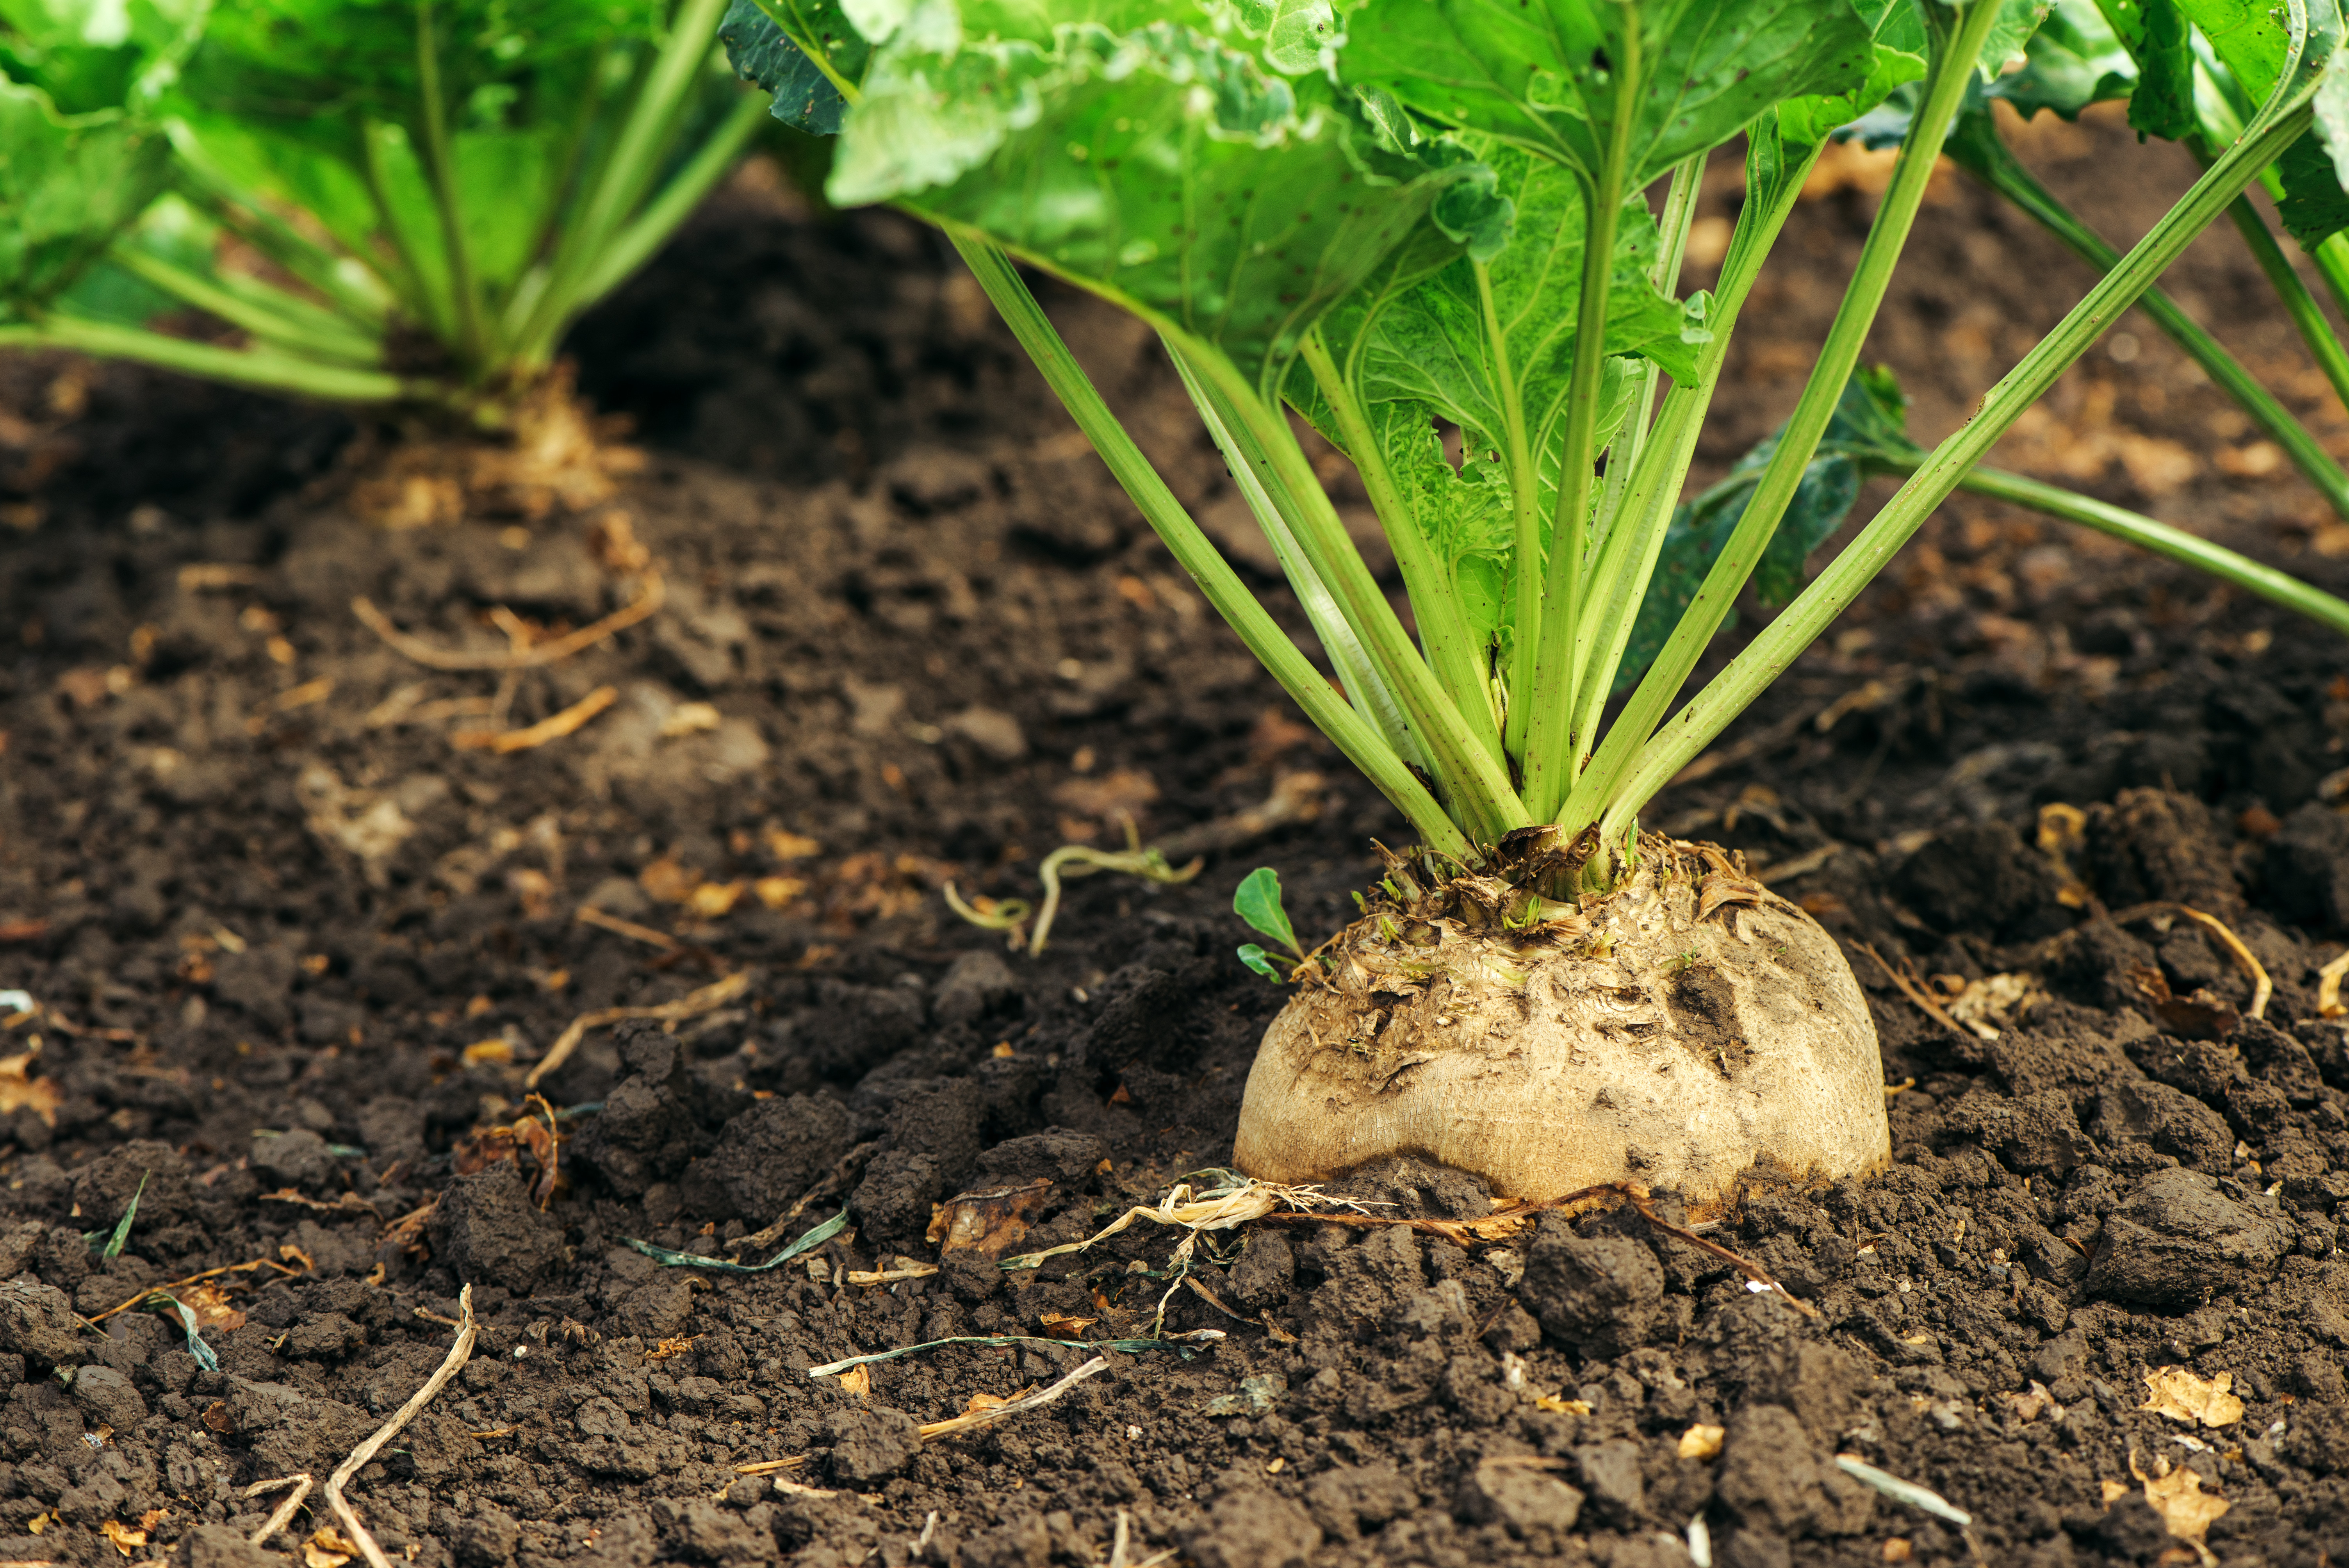 Sugar beet growing in a field